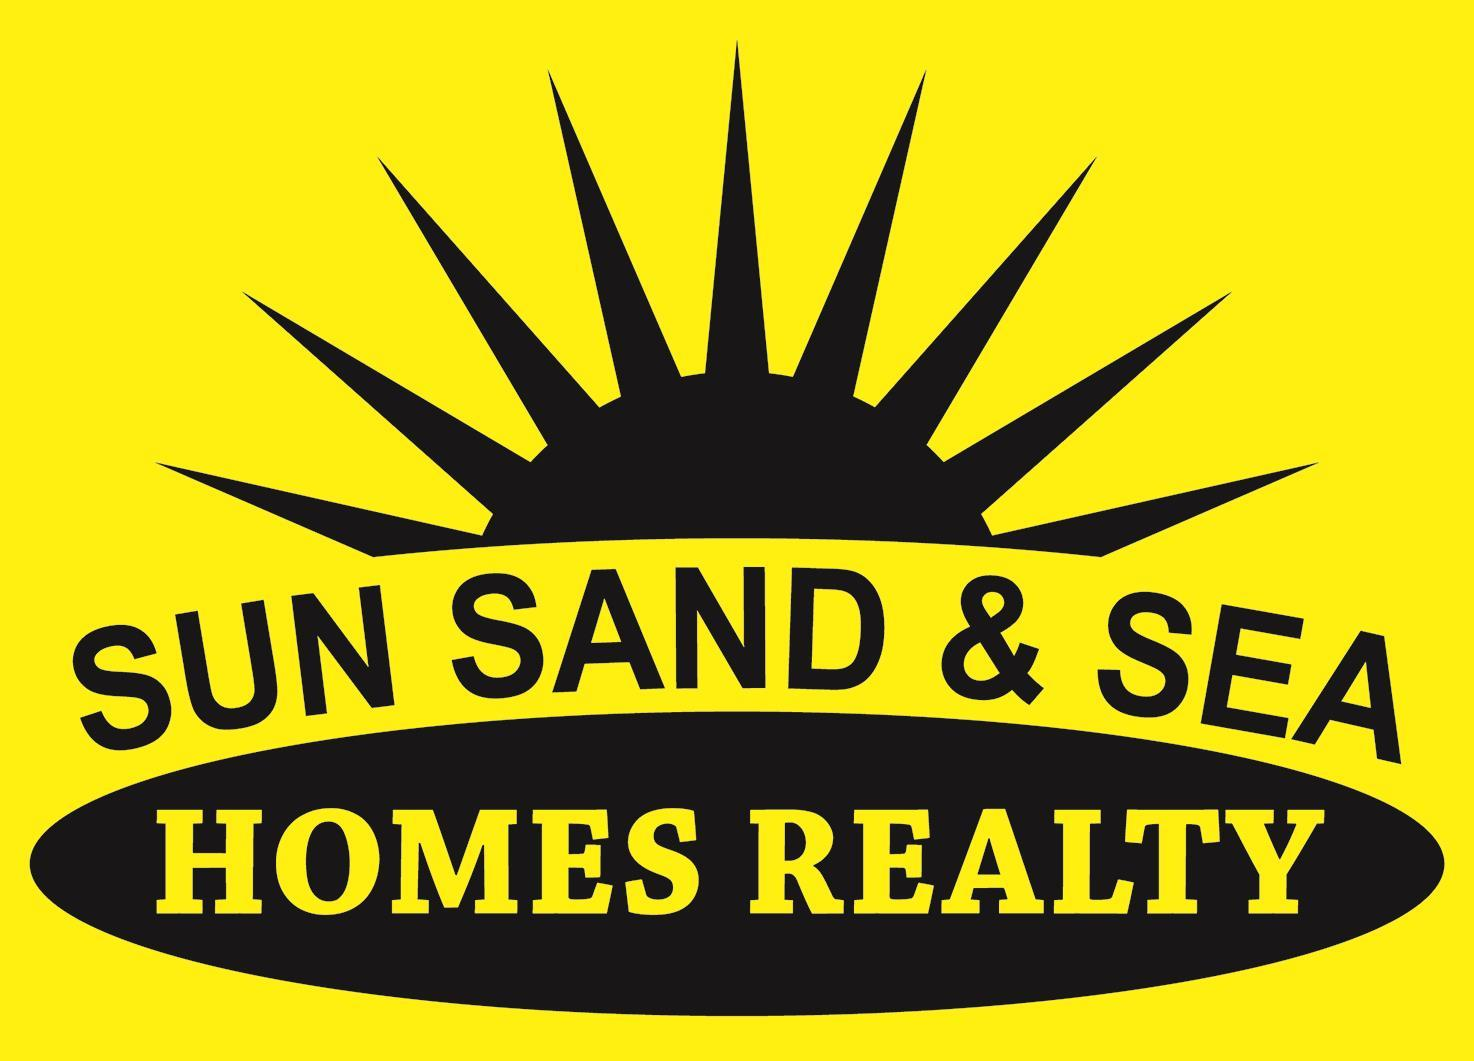 Sun Sand & Sea Homes Realty